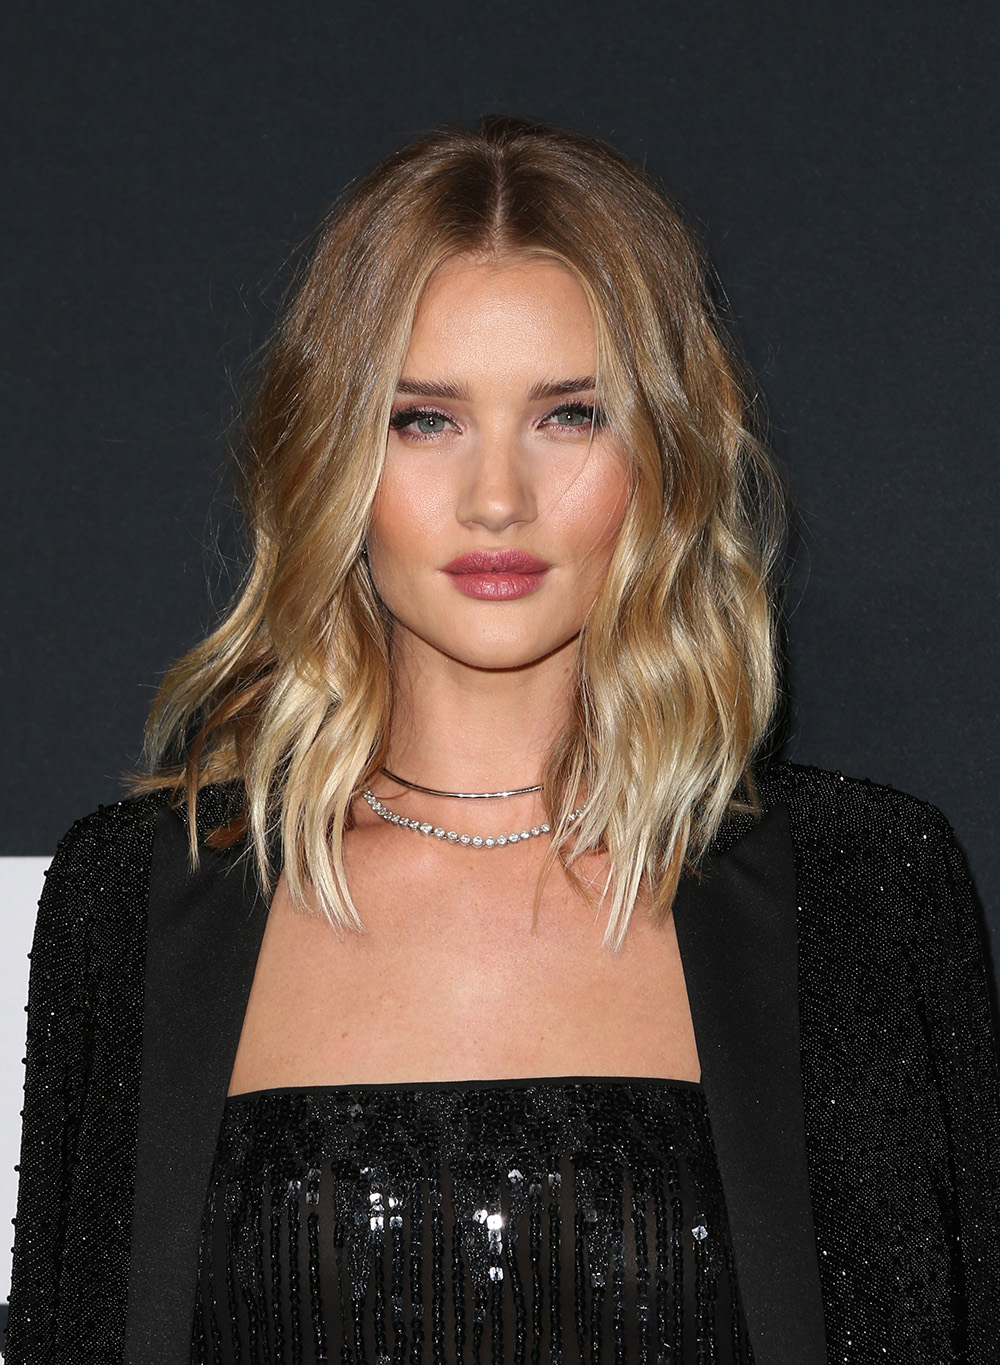 Rosie Huntington-Whiteley wavy lob hairstyles 2018